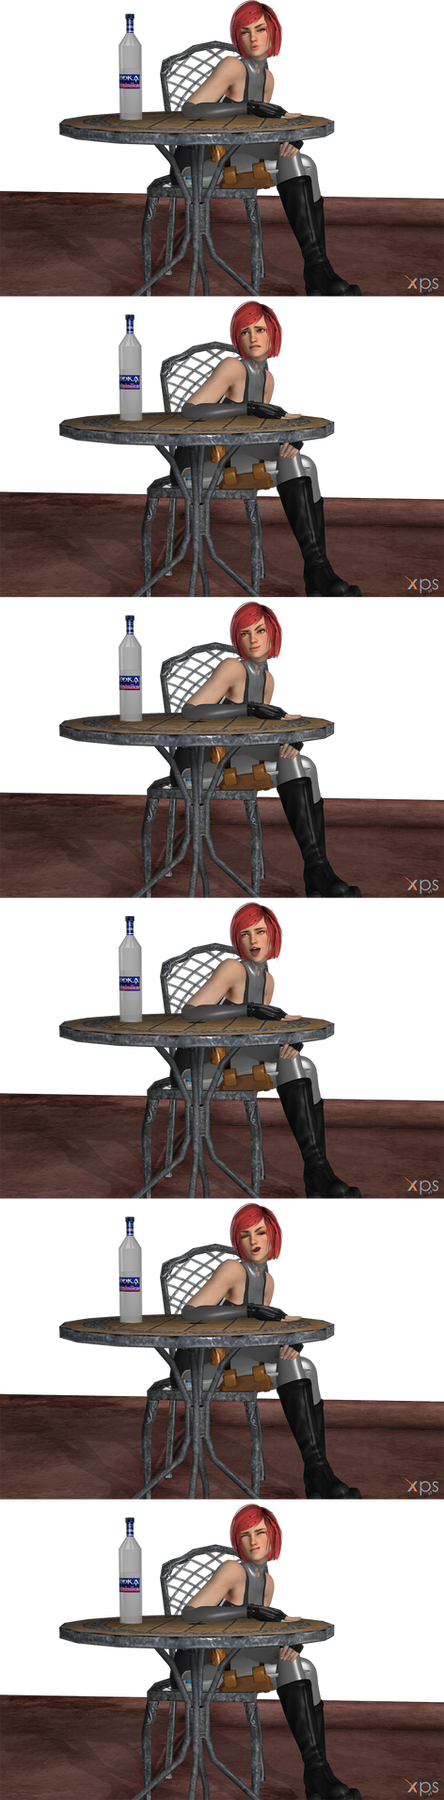 DOA Face Pose Pack 1 by Marcelievsky